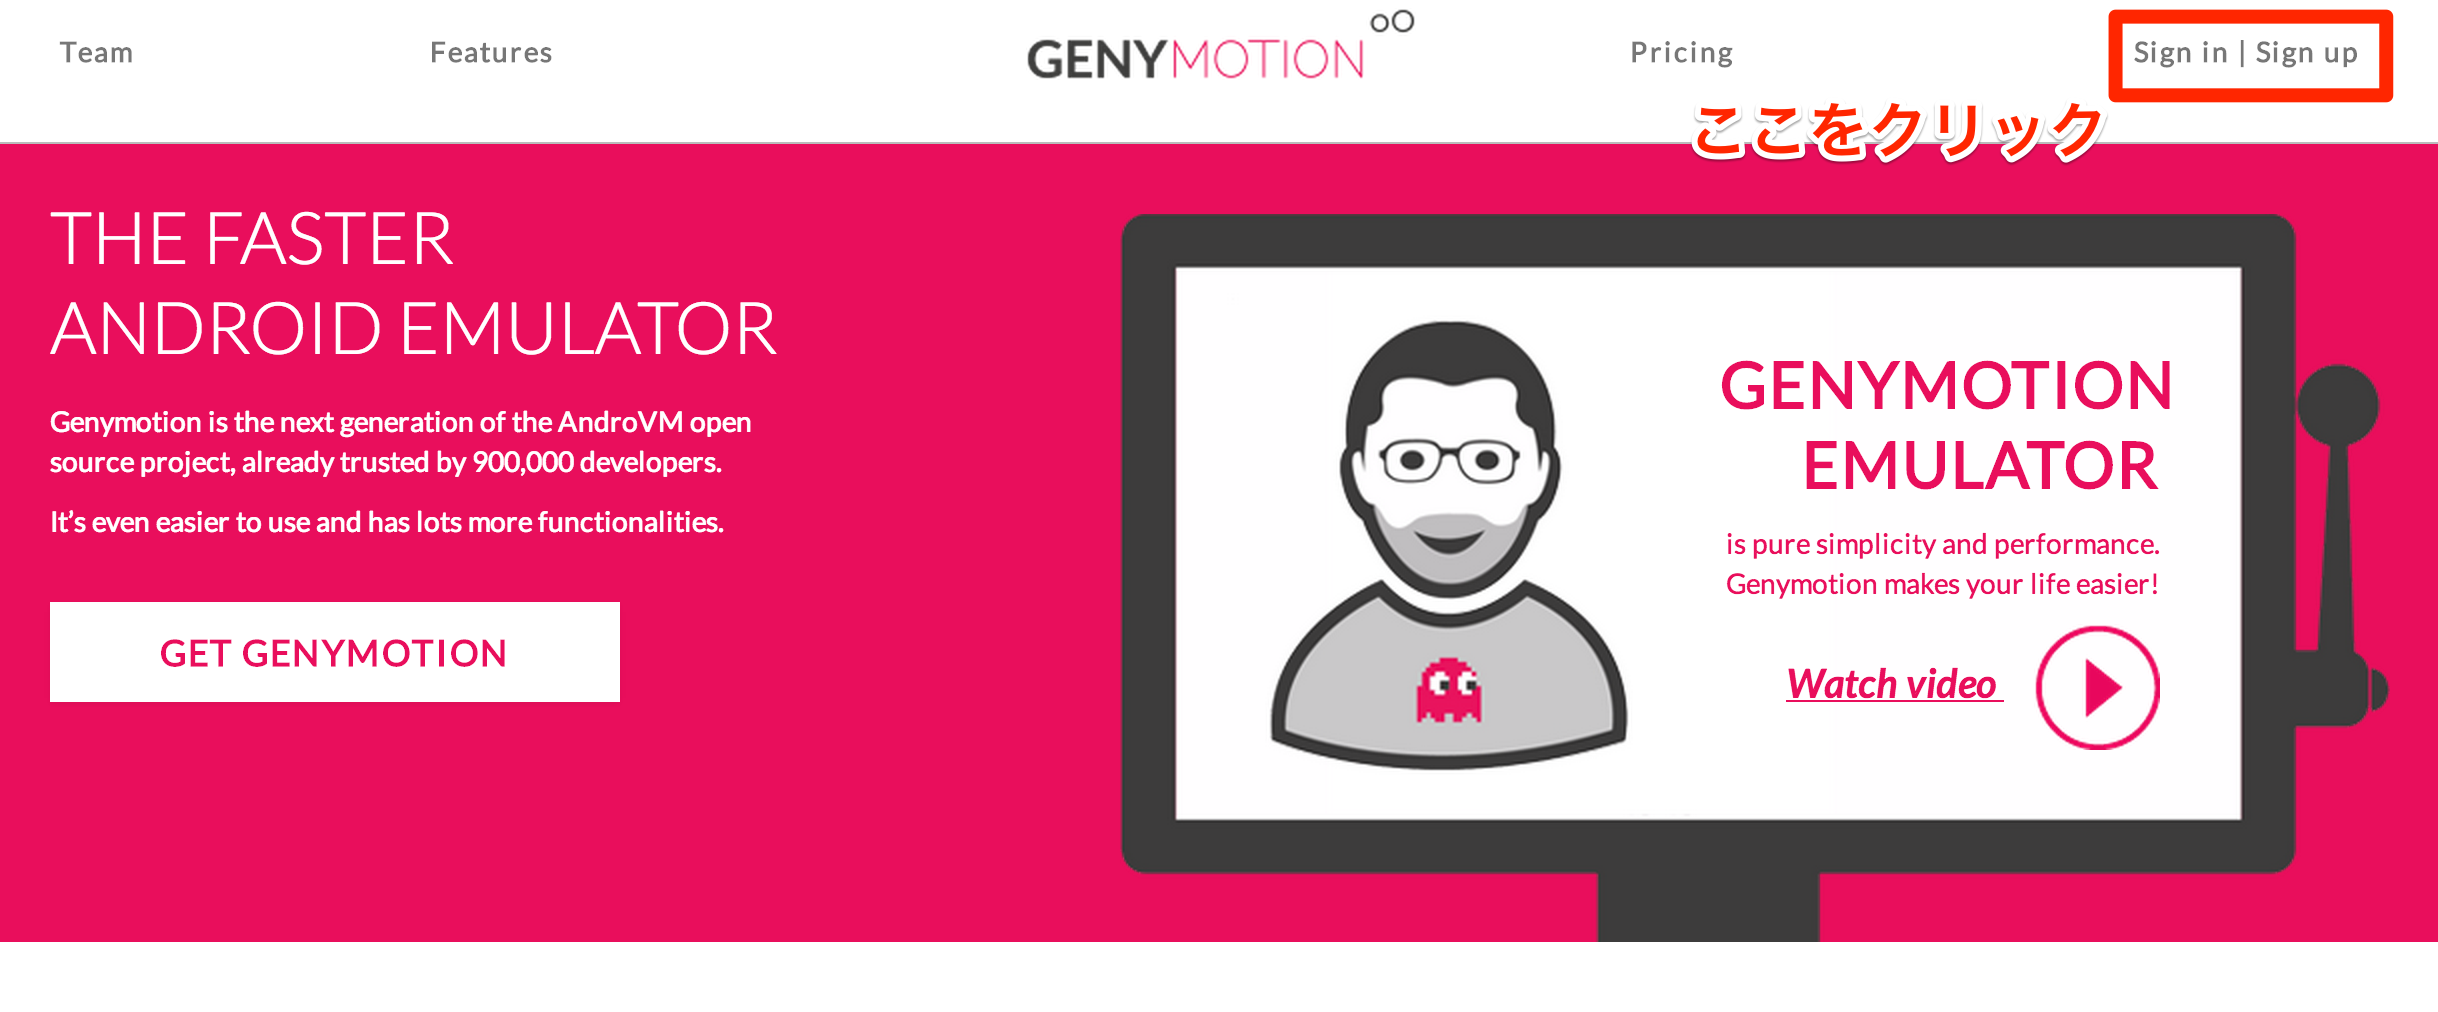 genymotion1.png